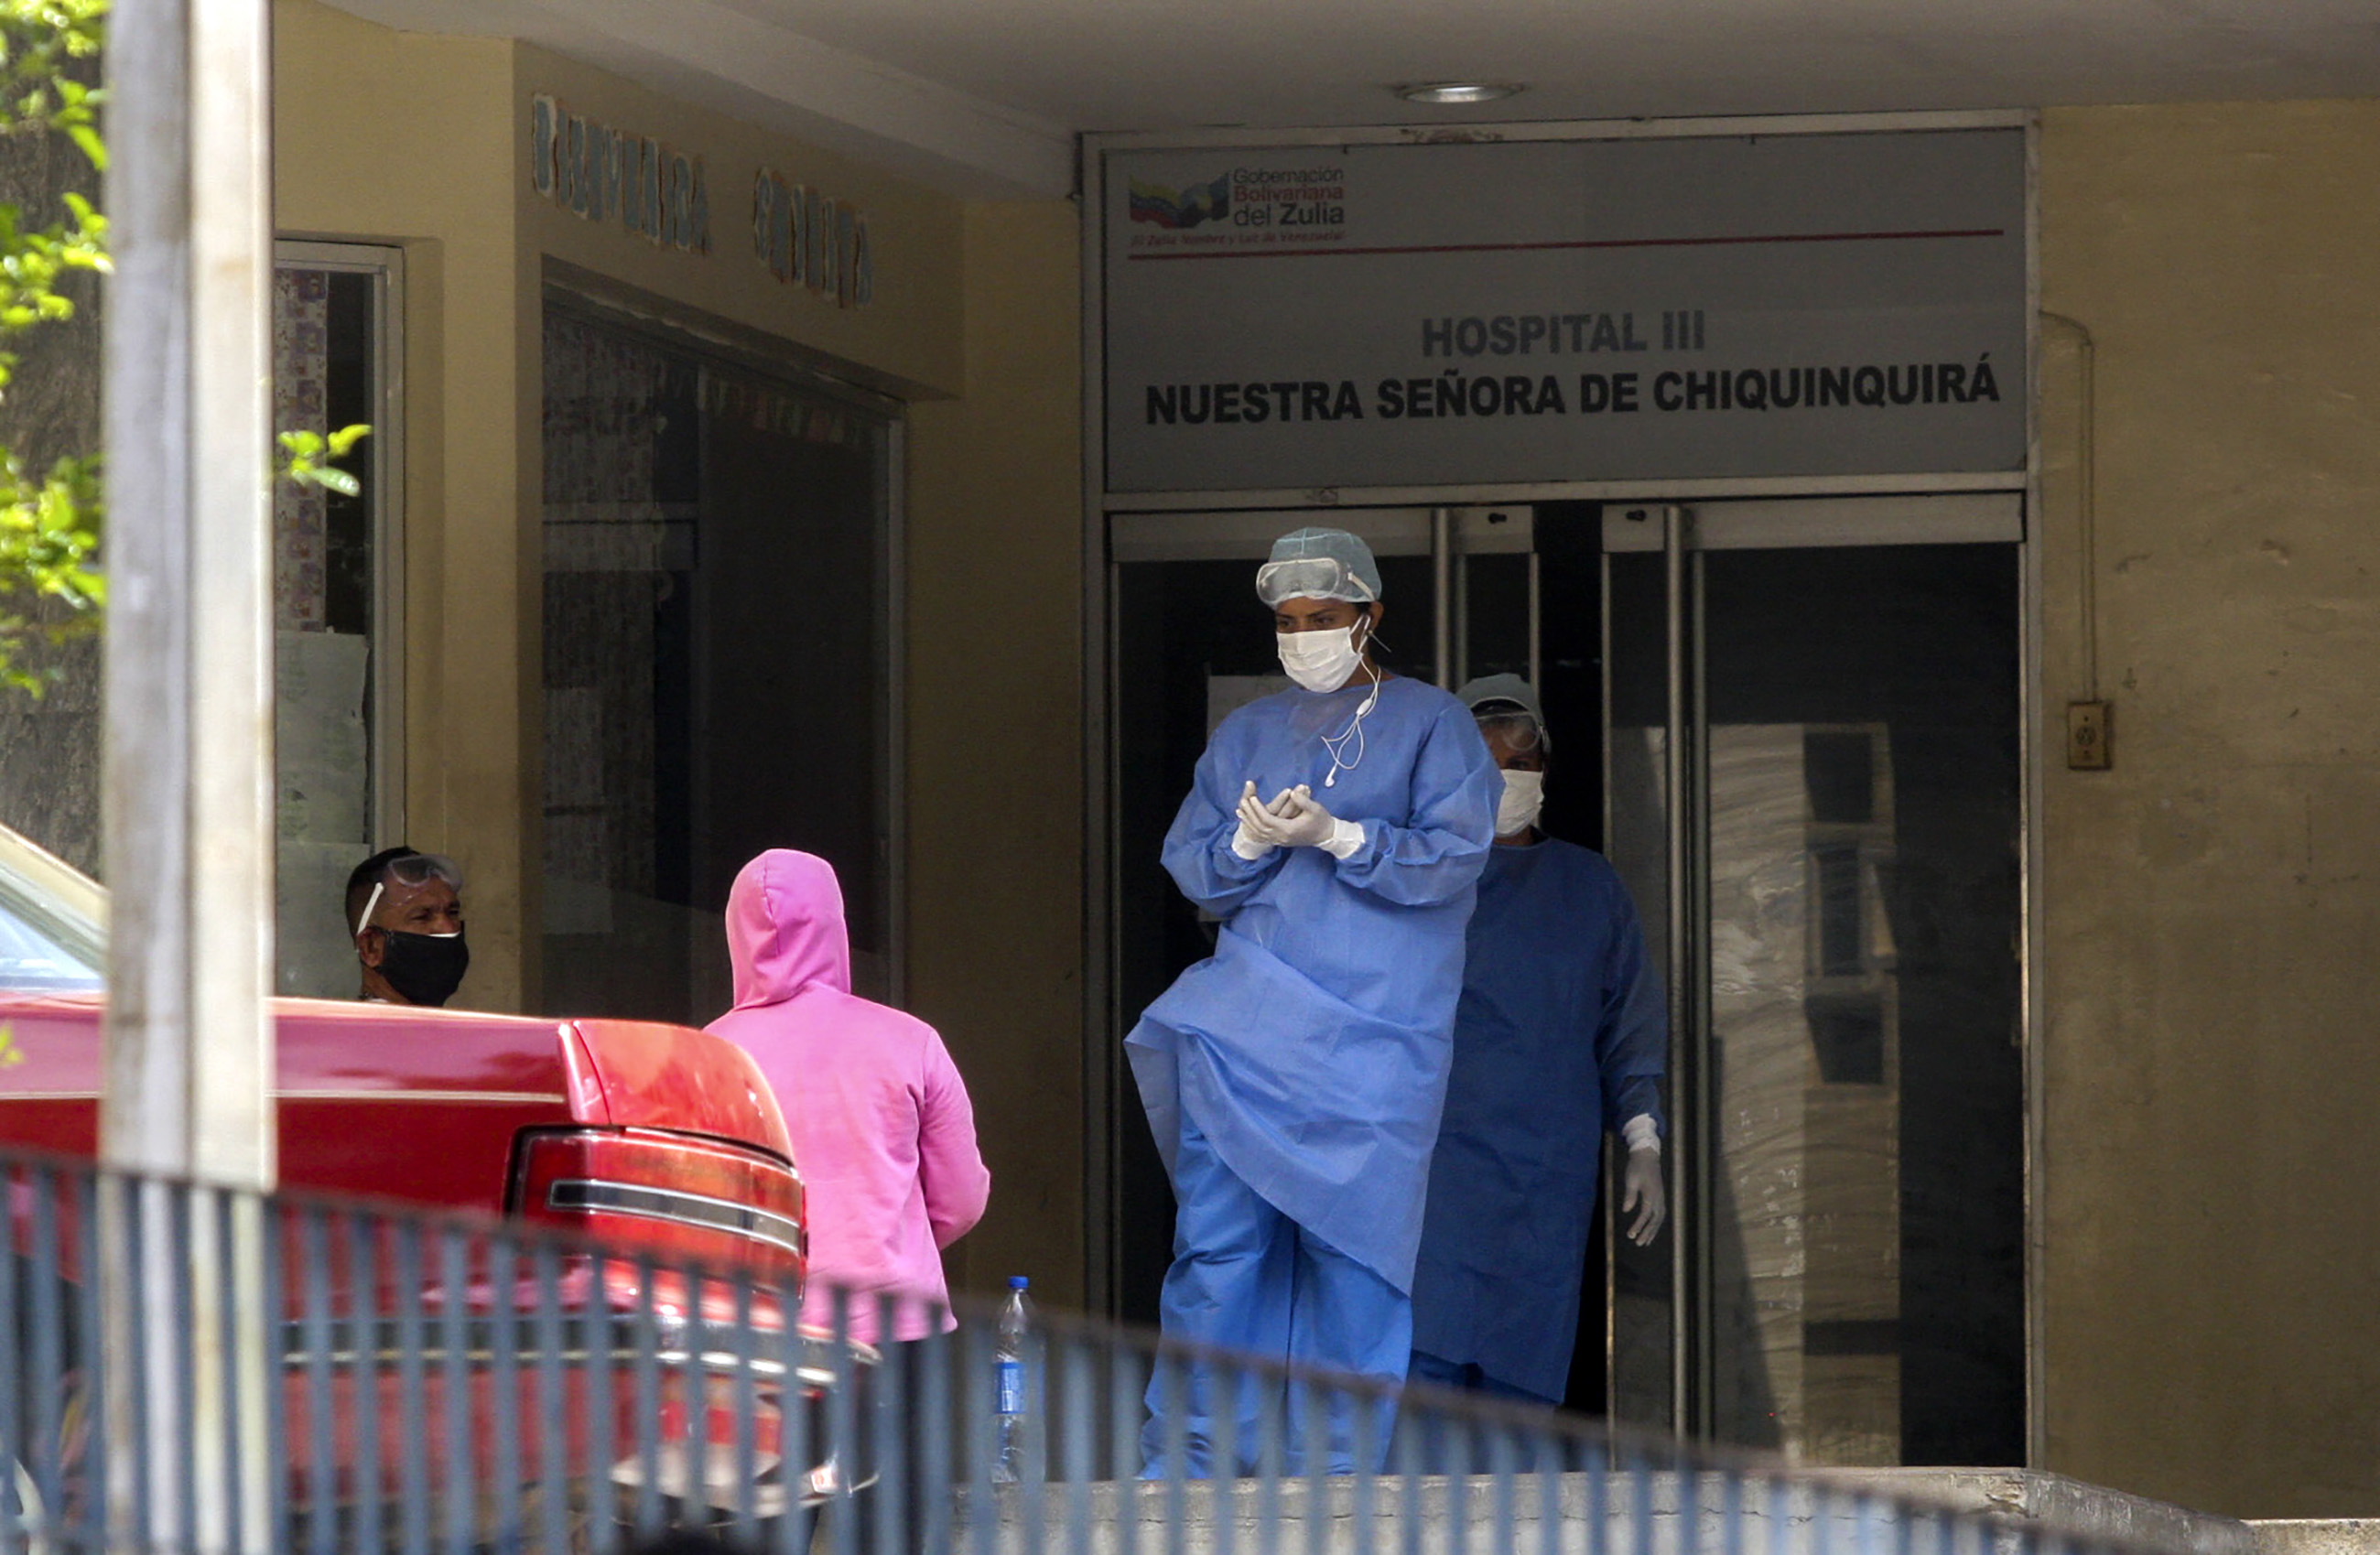 Medical personnel are seen outside the emergency room of the University Hospital in Maracaibo, in Venezuela, on July 2, amid the Covid-19 pandemic.